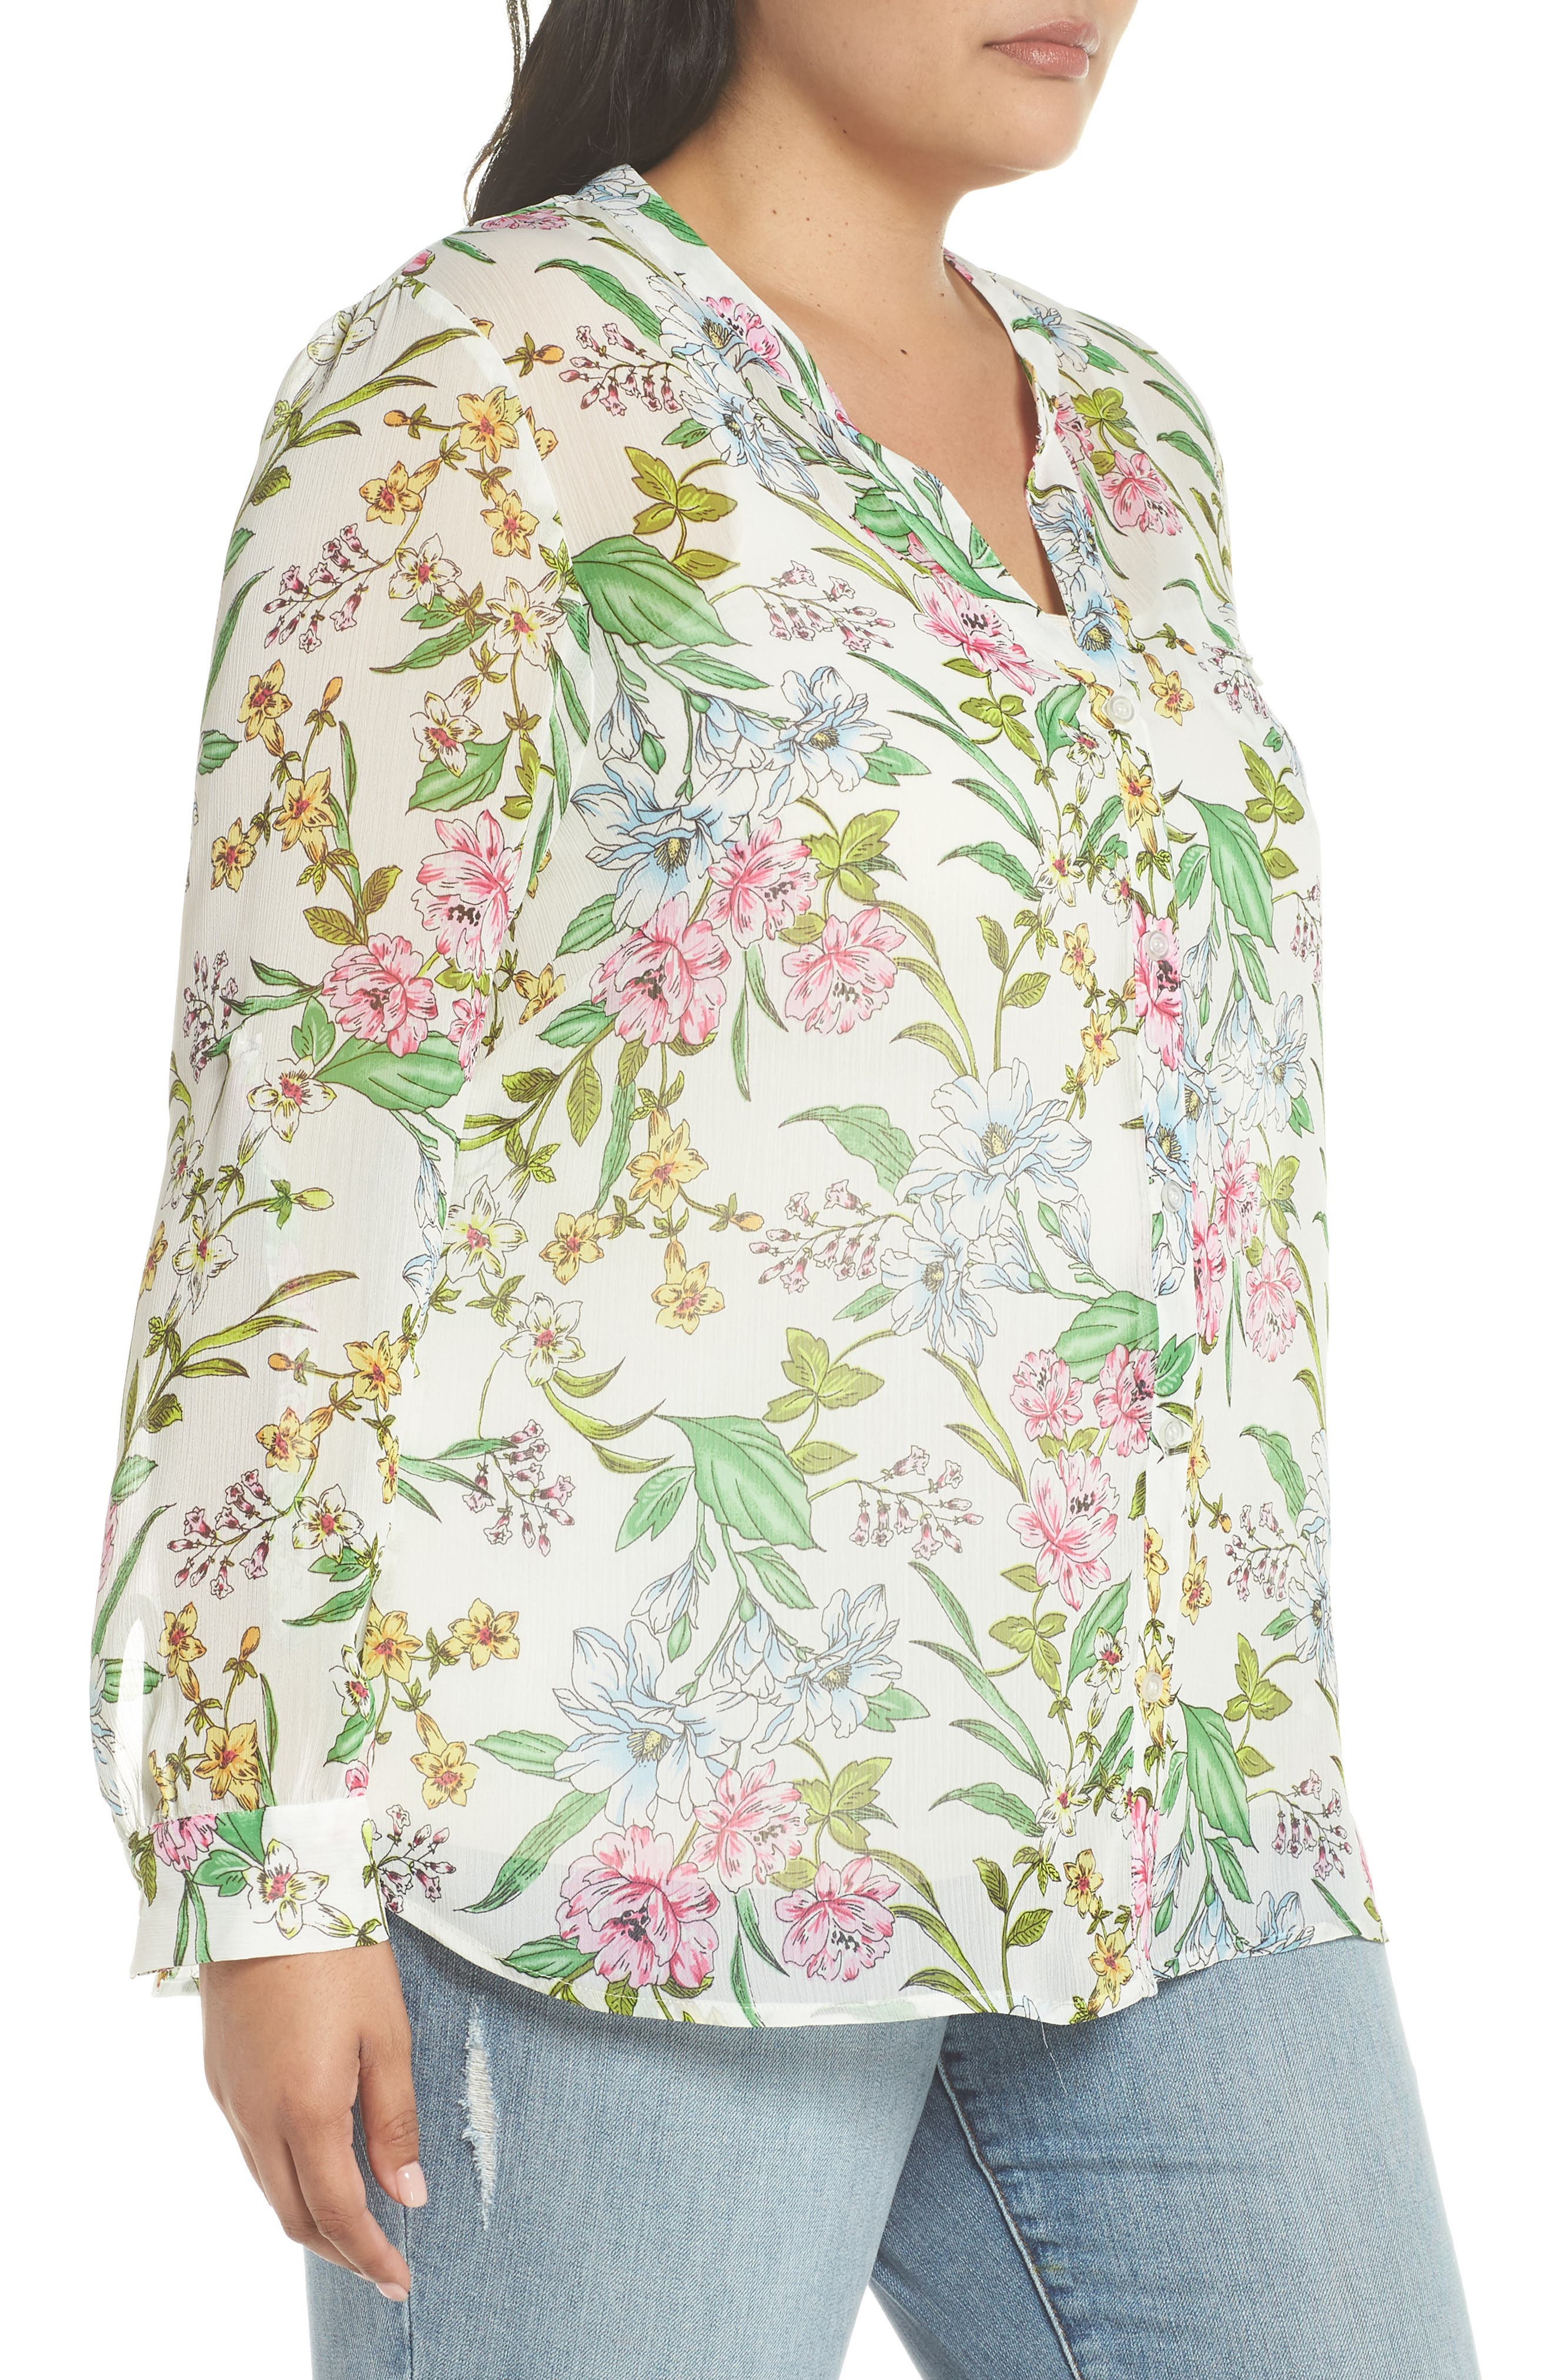 Jasmine Floral Roll Sleeve Top,                             Alternate thumbnail 3, color,                             White/ Green